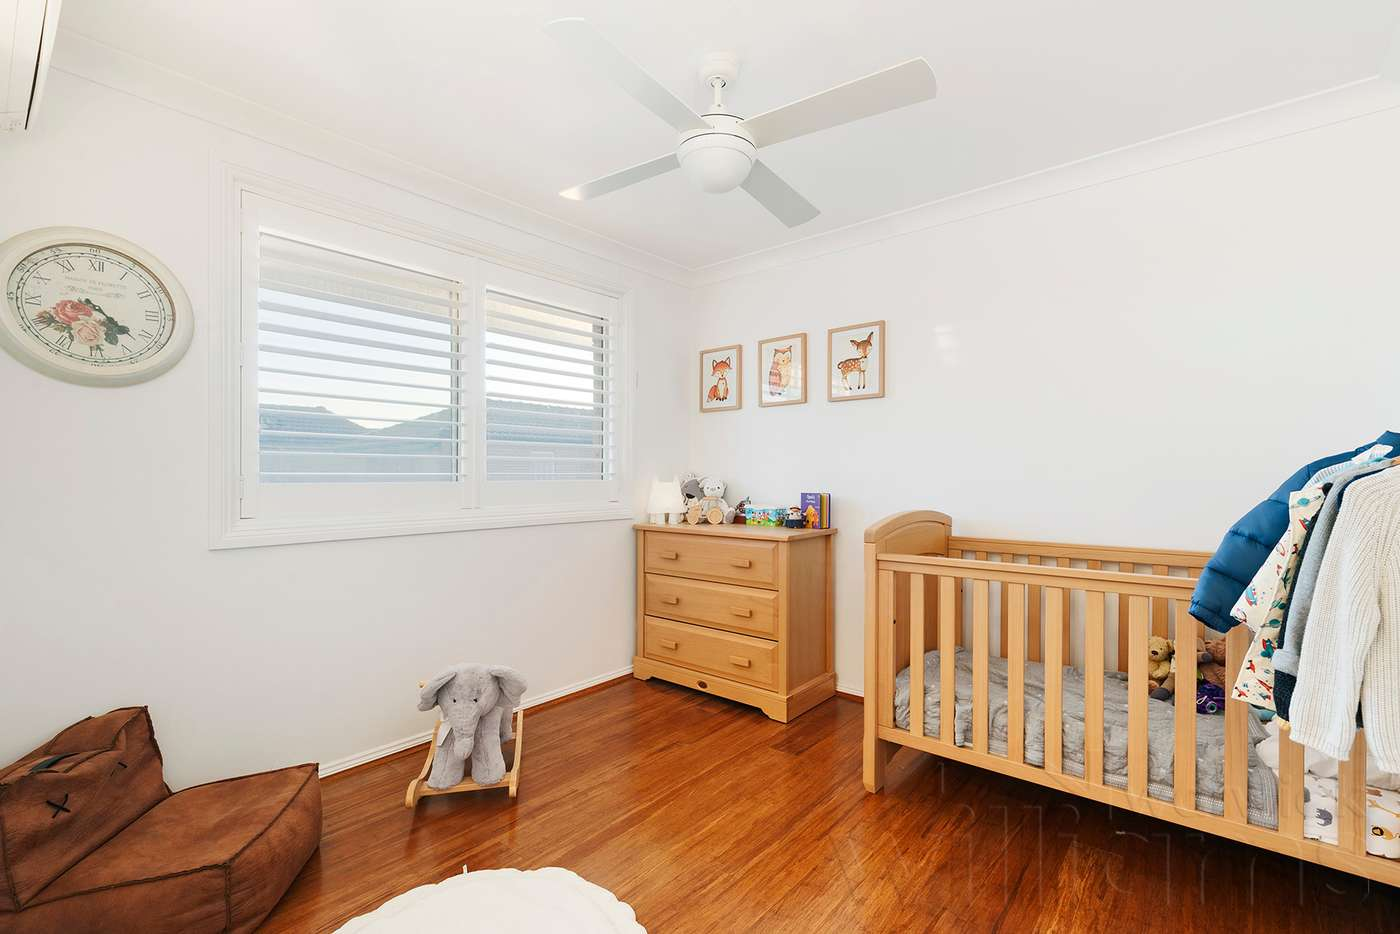 Sixth view of Homely townhouse listing, 3/41 Coranto Street, Wareemba NSW 2046